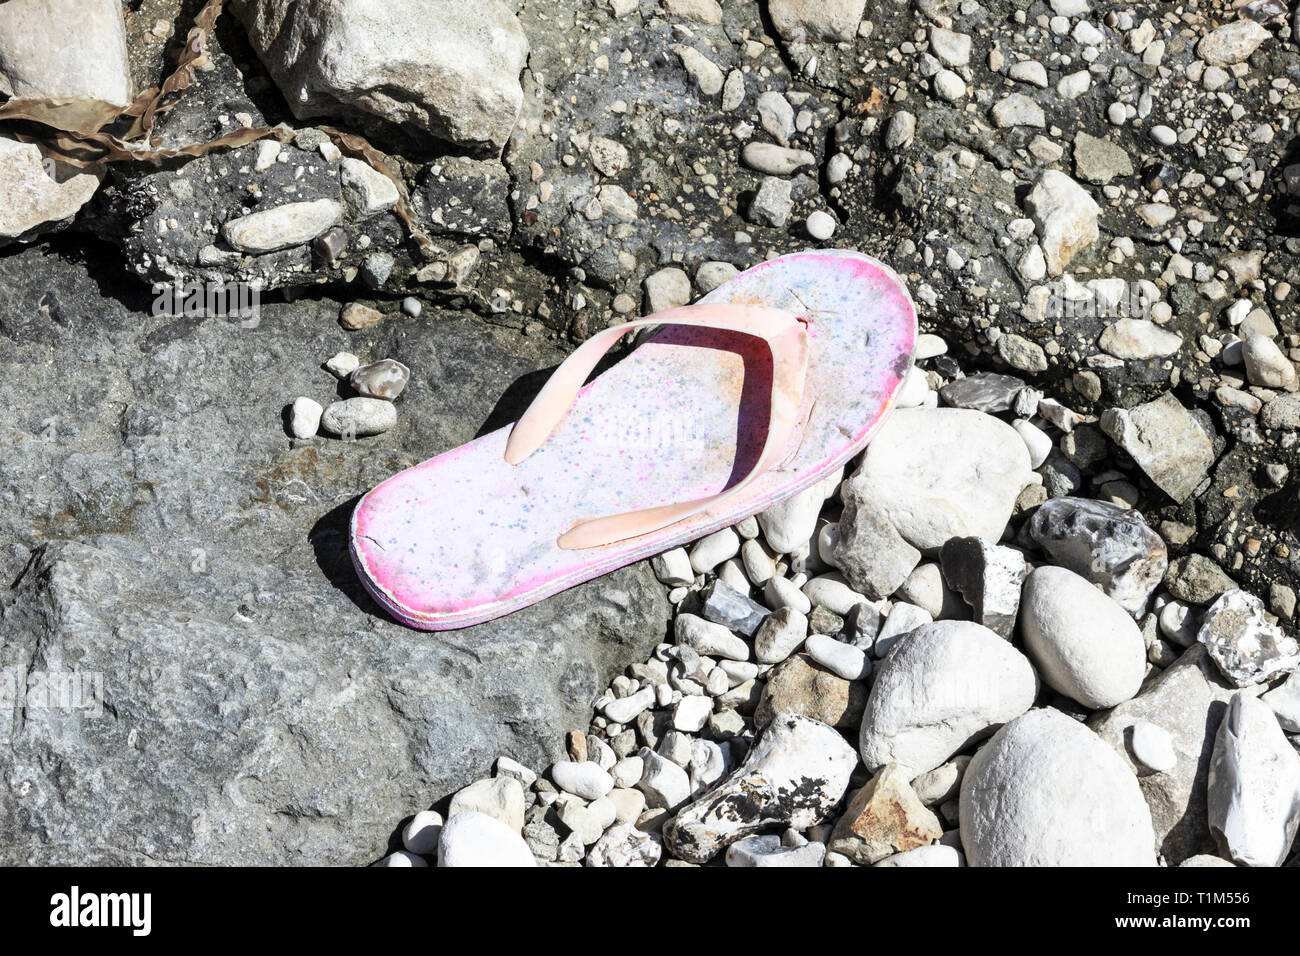 An abandoned or lost pink flip-flop shoe on a stony beach - Stock Image